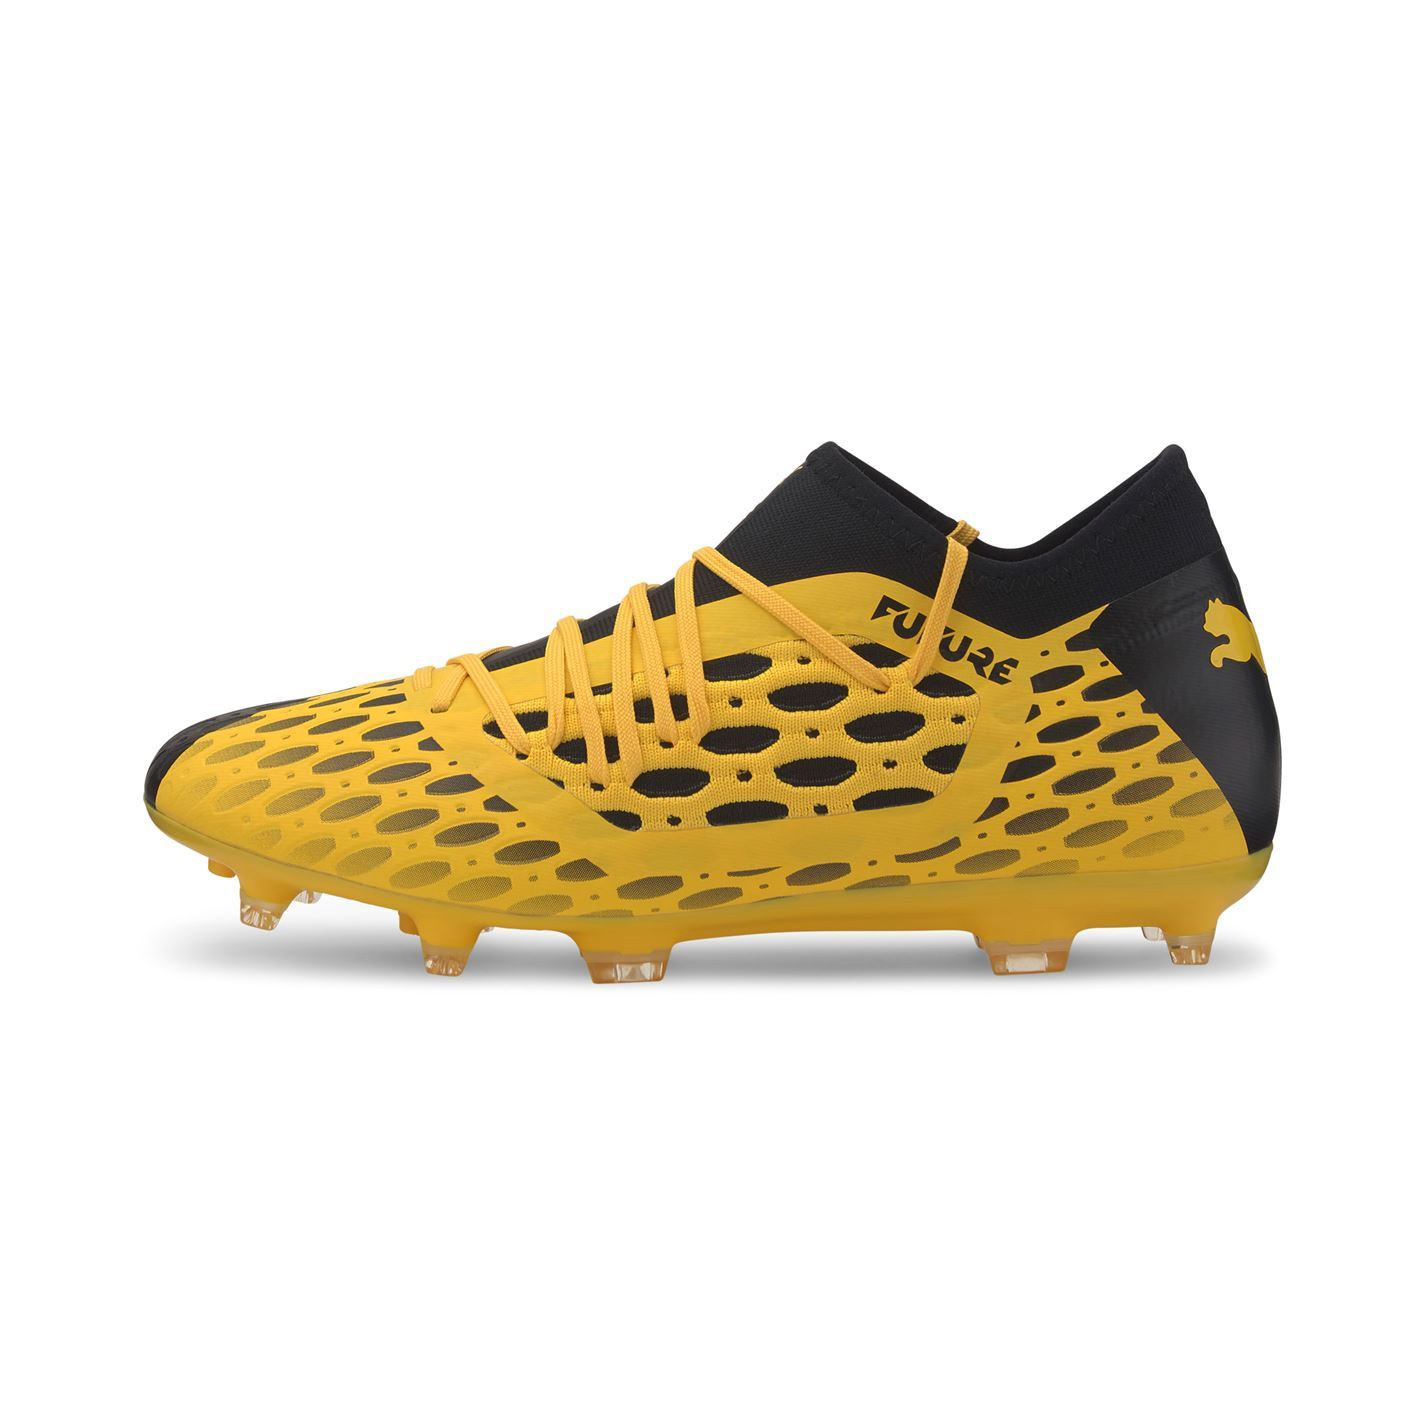 miniature 4 - Puma Future 5.3 Homme FG Firm Ground Chaussures De Football Chaussures de Foot Crampons Baskets